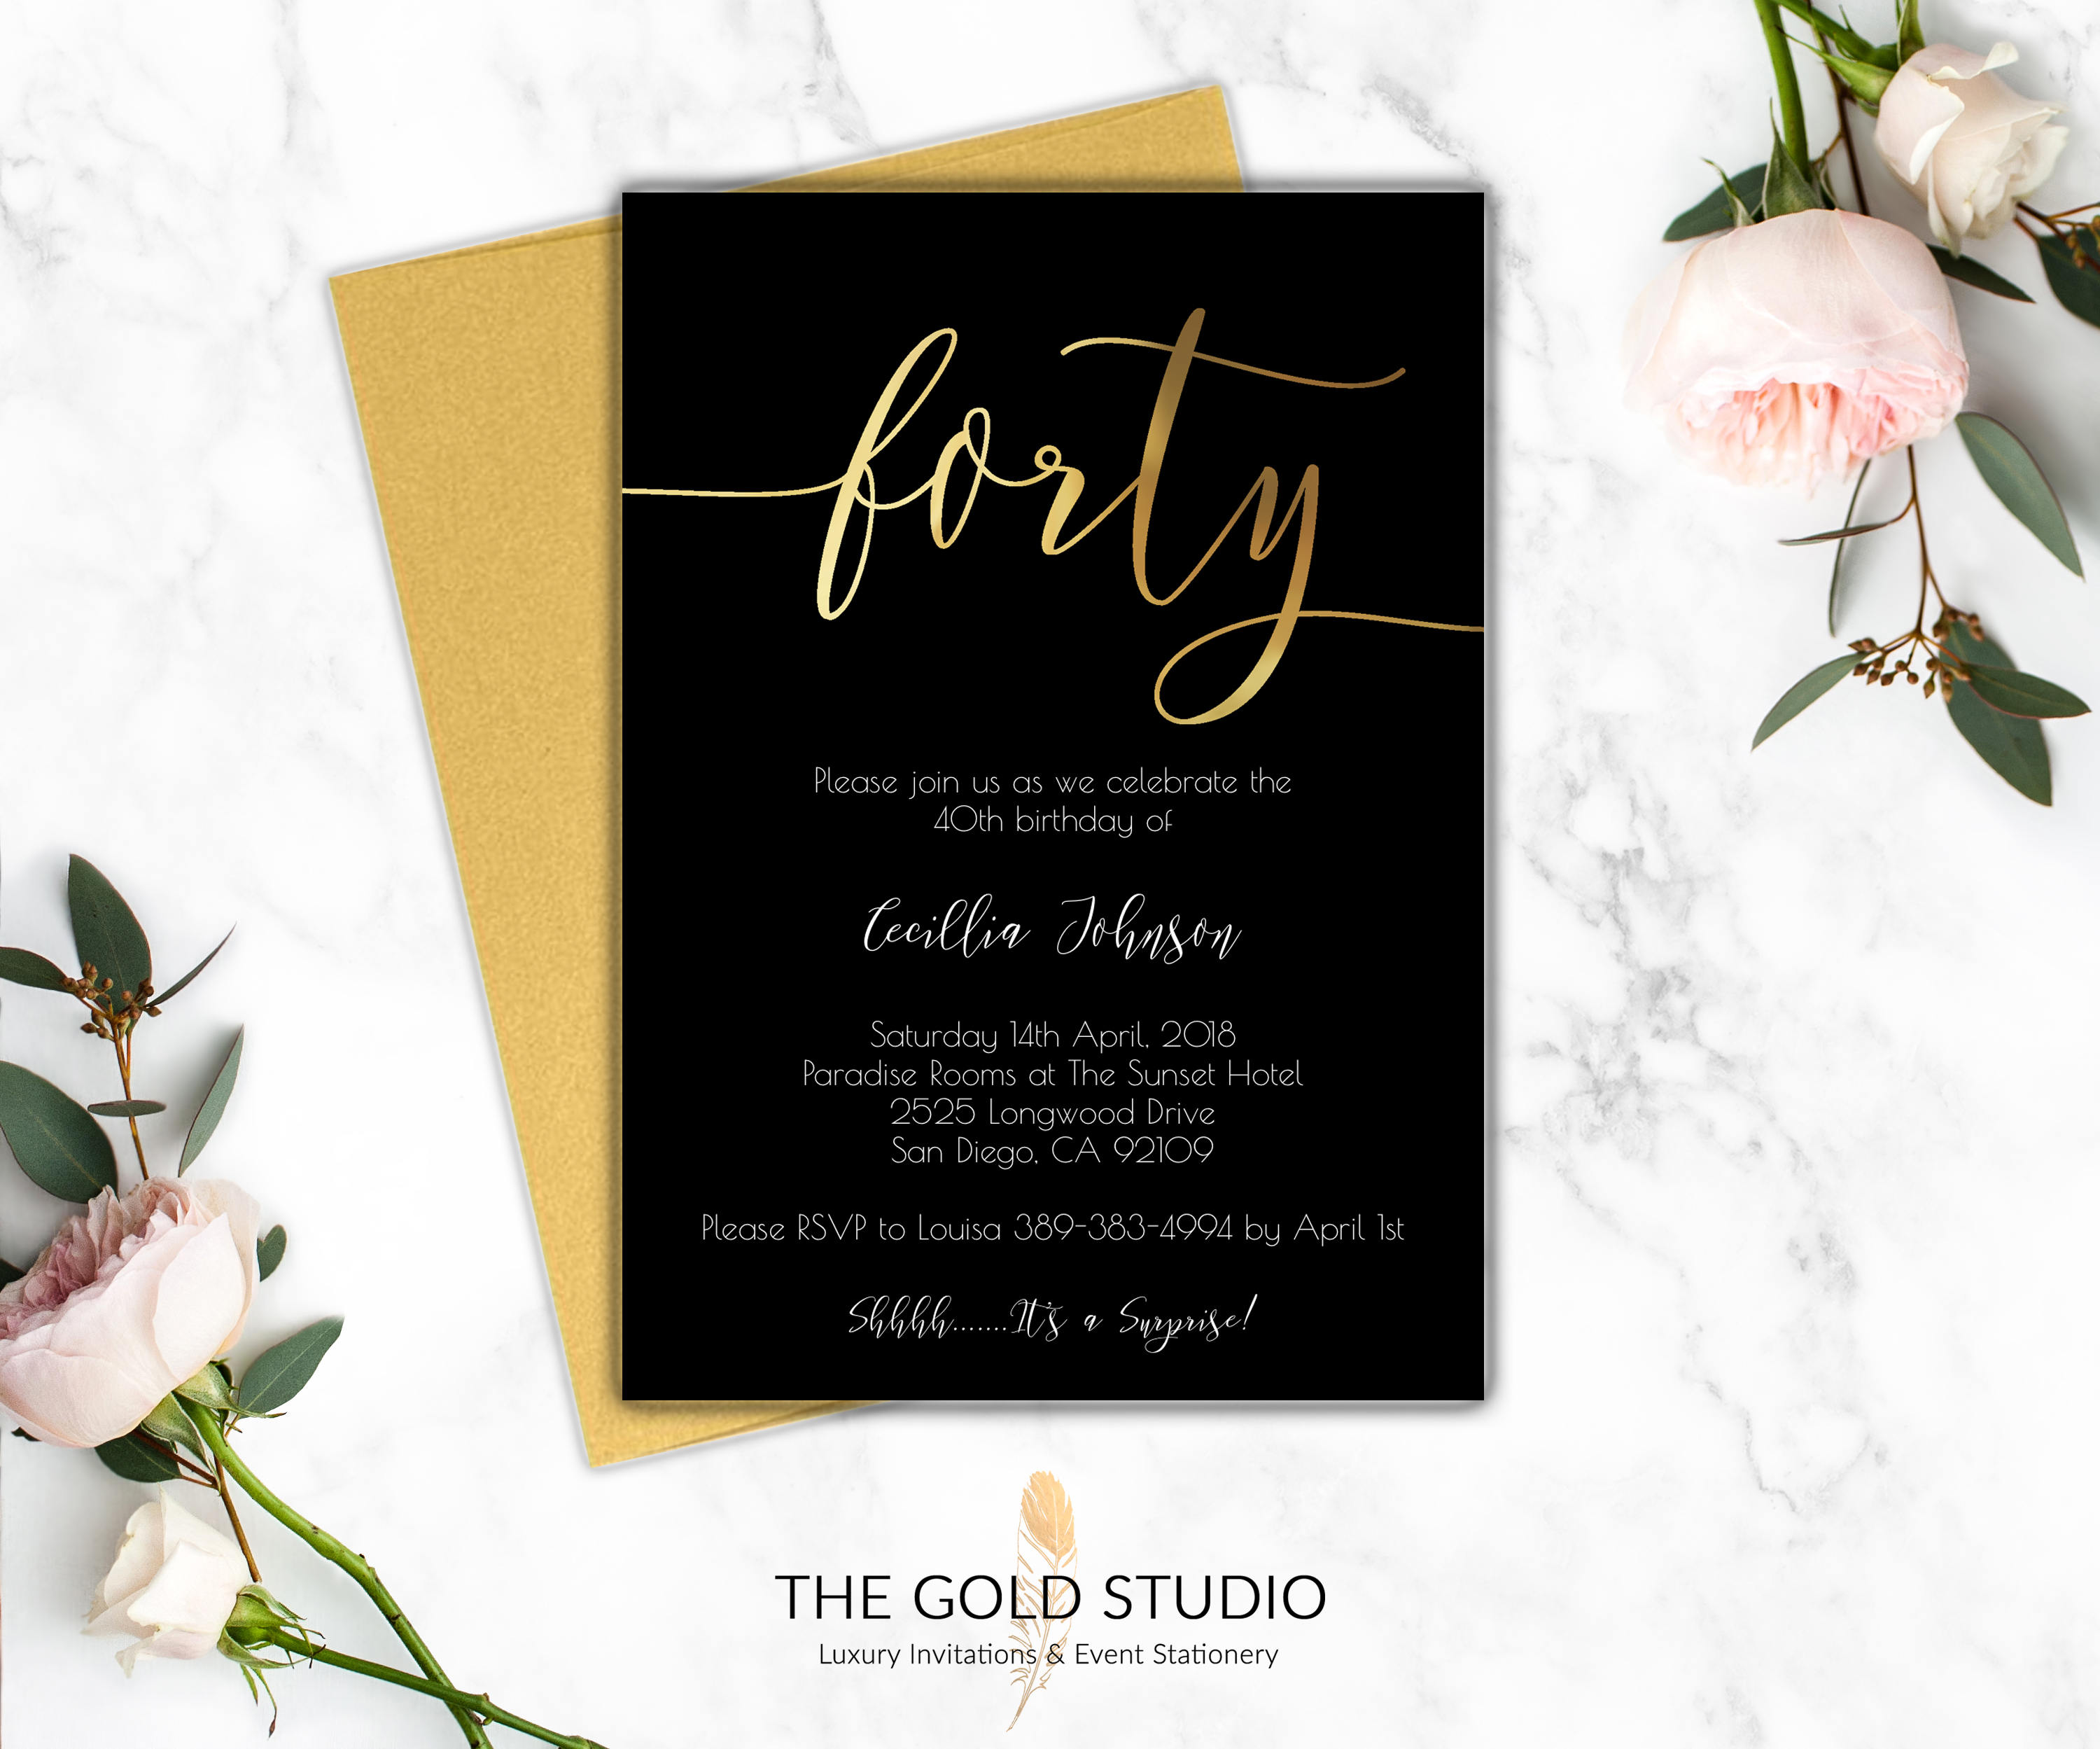 40th Birthday Party Printed Invitations Elegant Black Gold